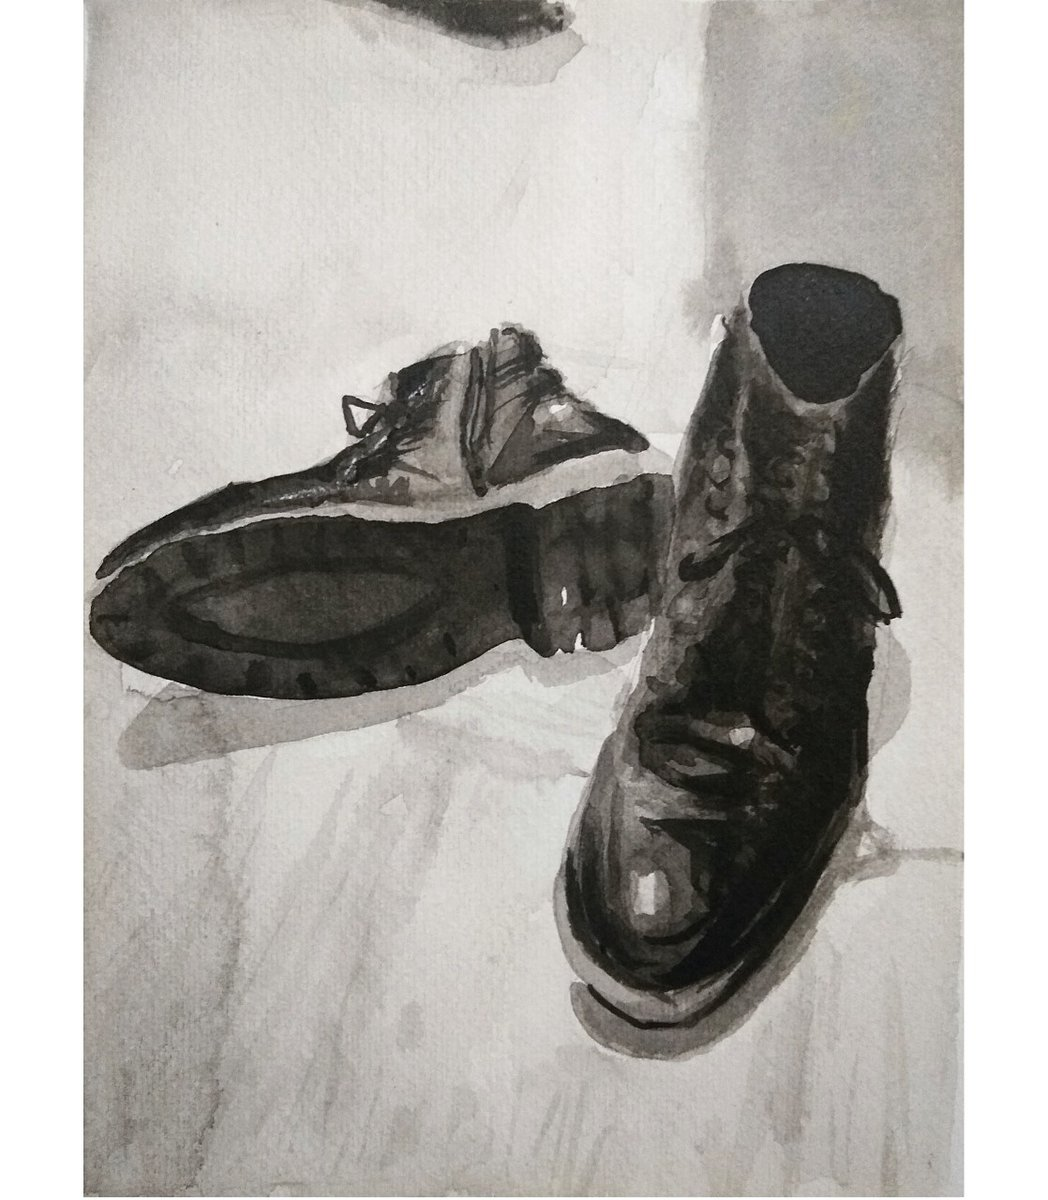 My boots Ink on cotton paper - #art #arts #artwork #visualart #fineart #kunst #mexicanart #mexicanartist #sketch #sketchbook #draw #drawing #contemporarydrawing #inkdrawing #ink #contemporaryrealism #contemporaryart #figurativeart #realism #expressionism #portrait #blackandwhite